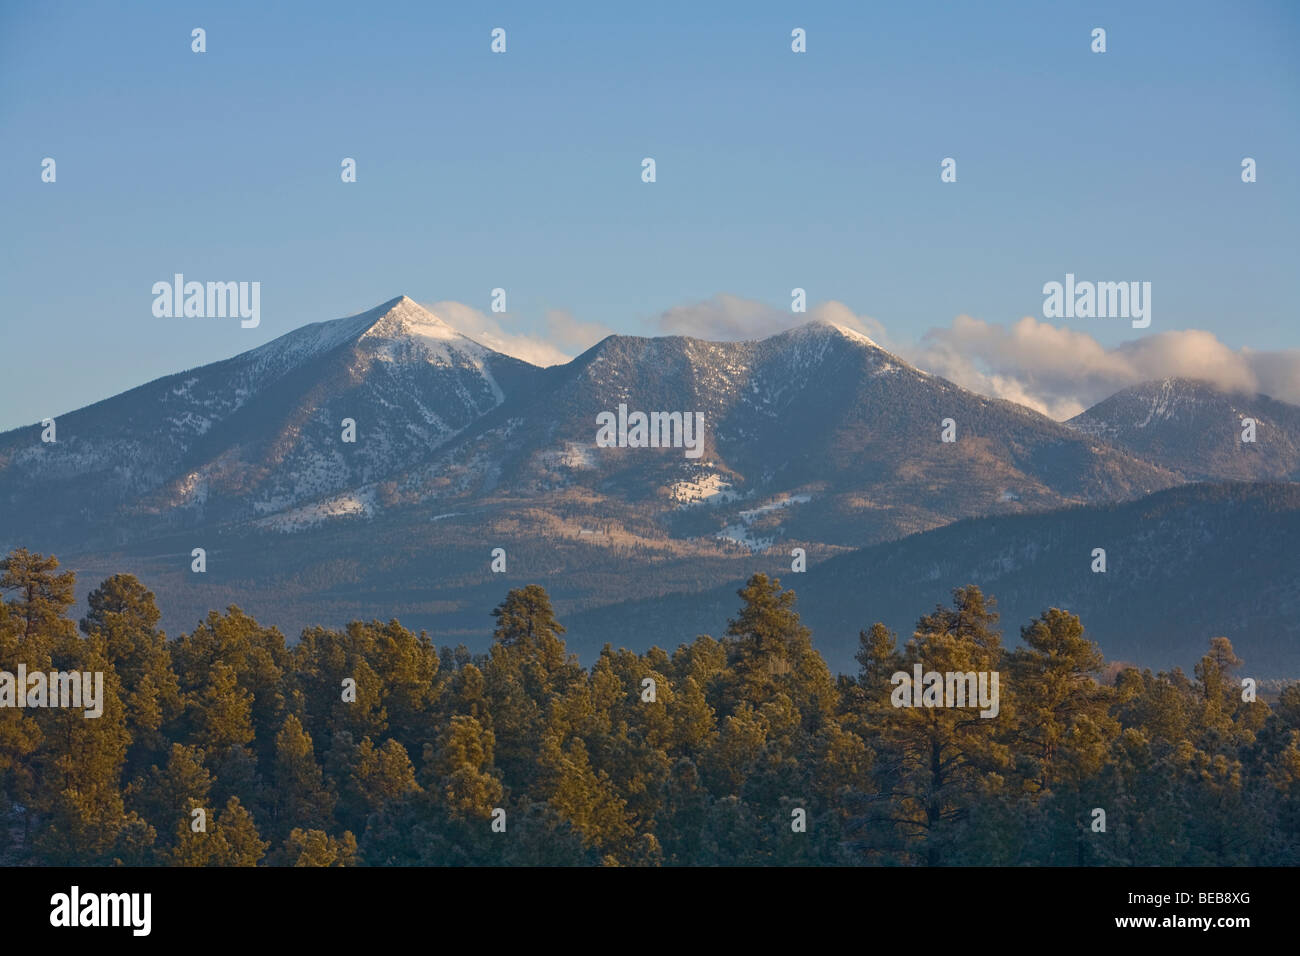 San Francisco Peaks on winter morning, viewed from NAU campus, Flagstaff, Arizona, USA - Stock Image